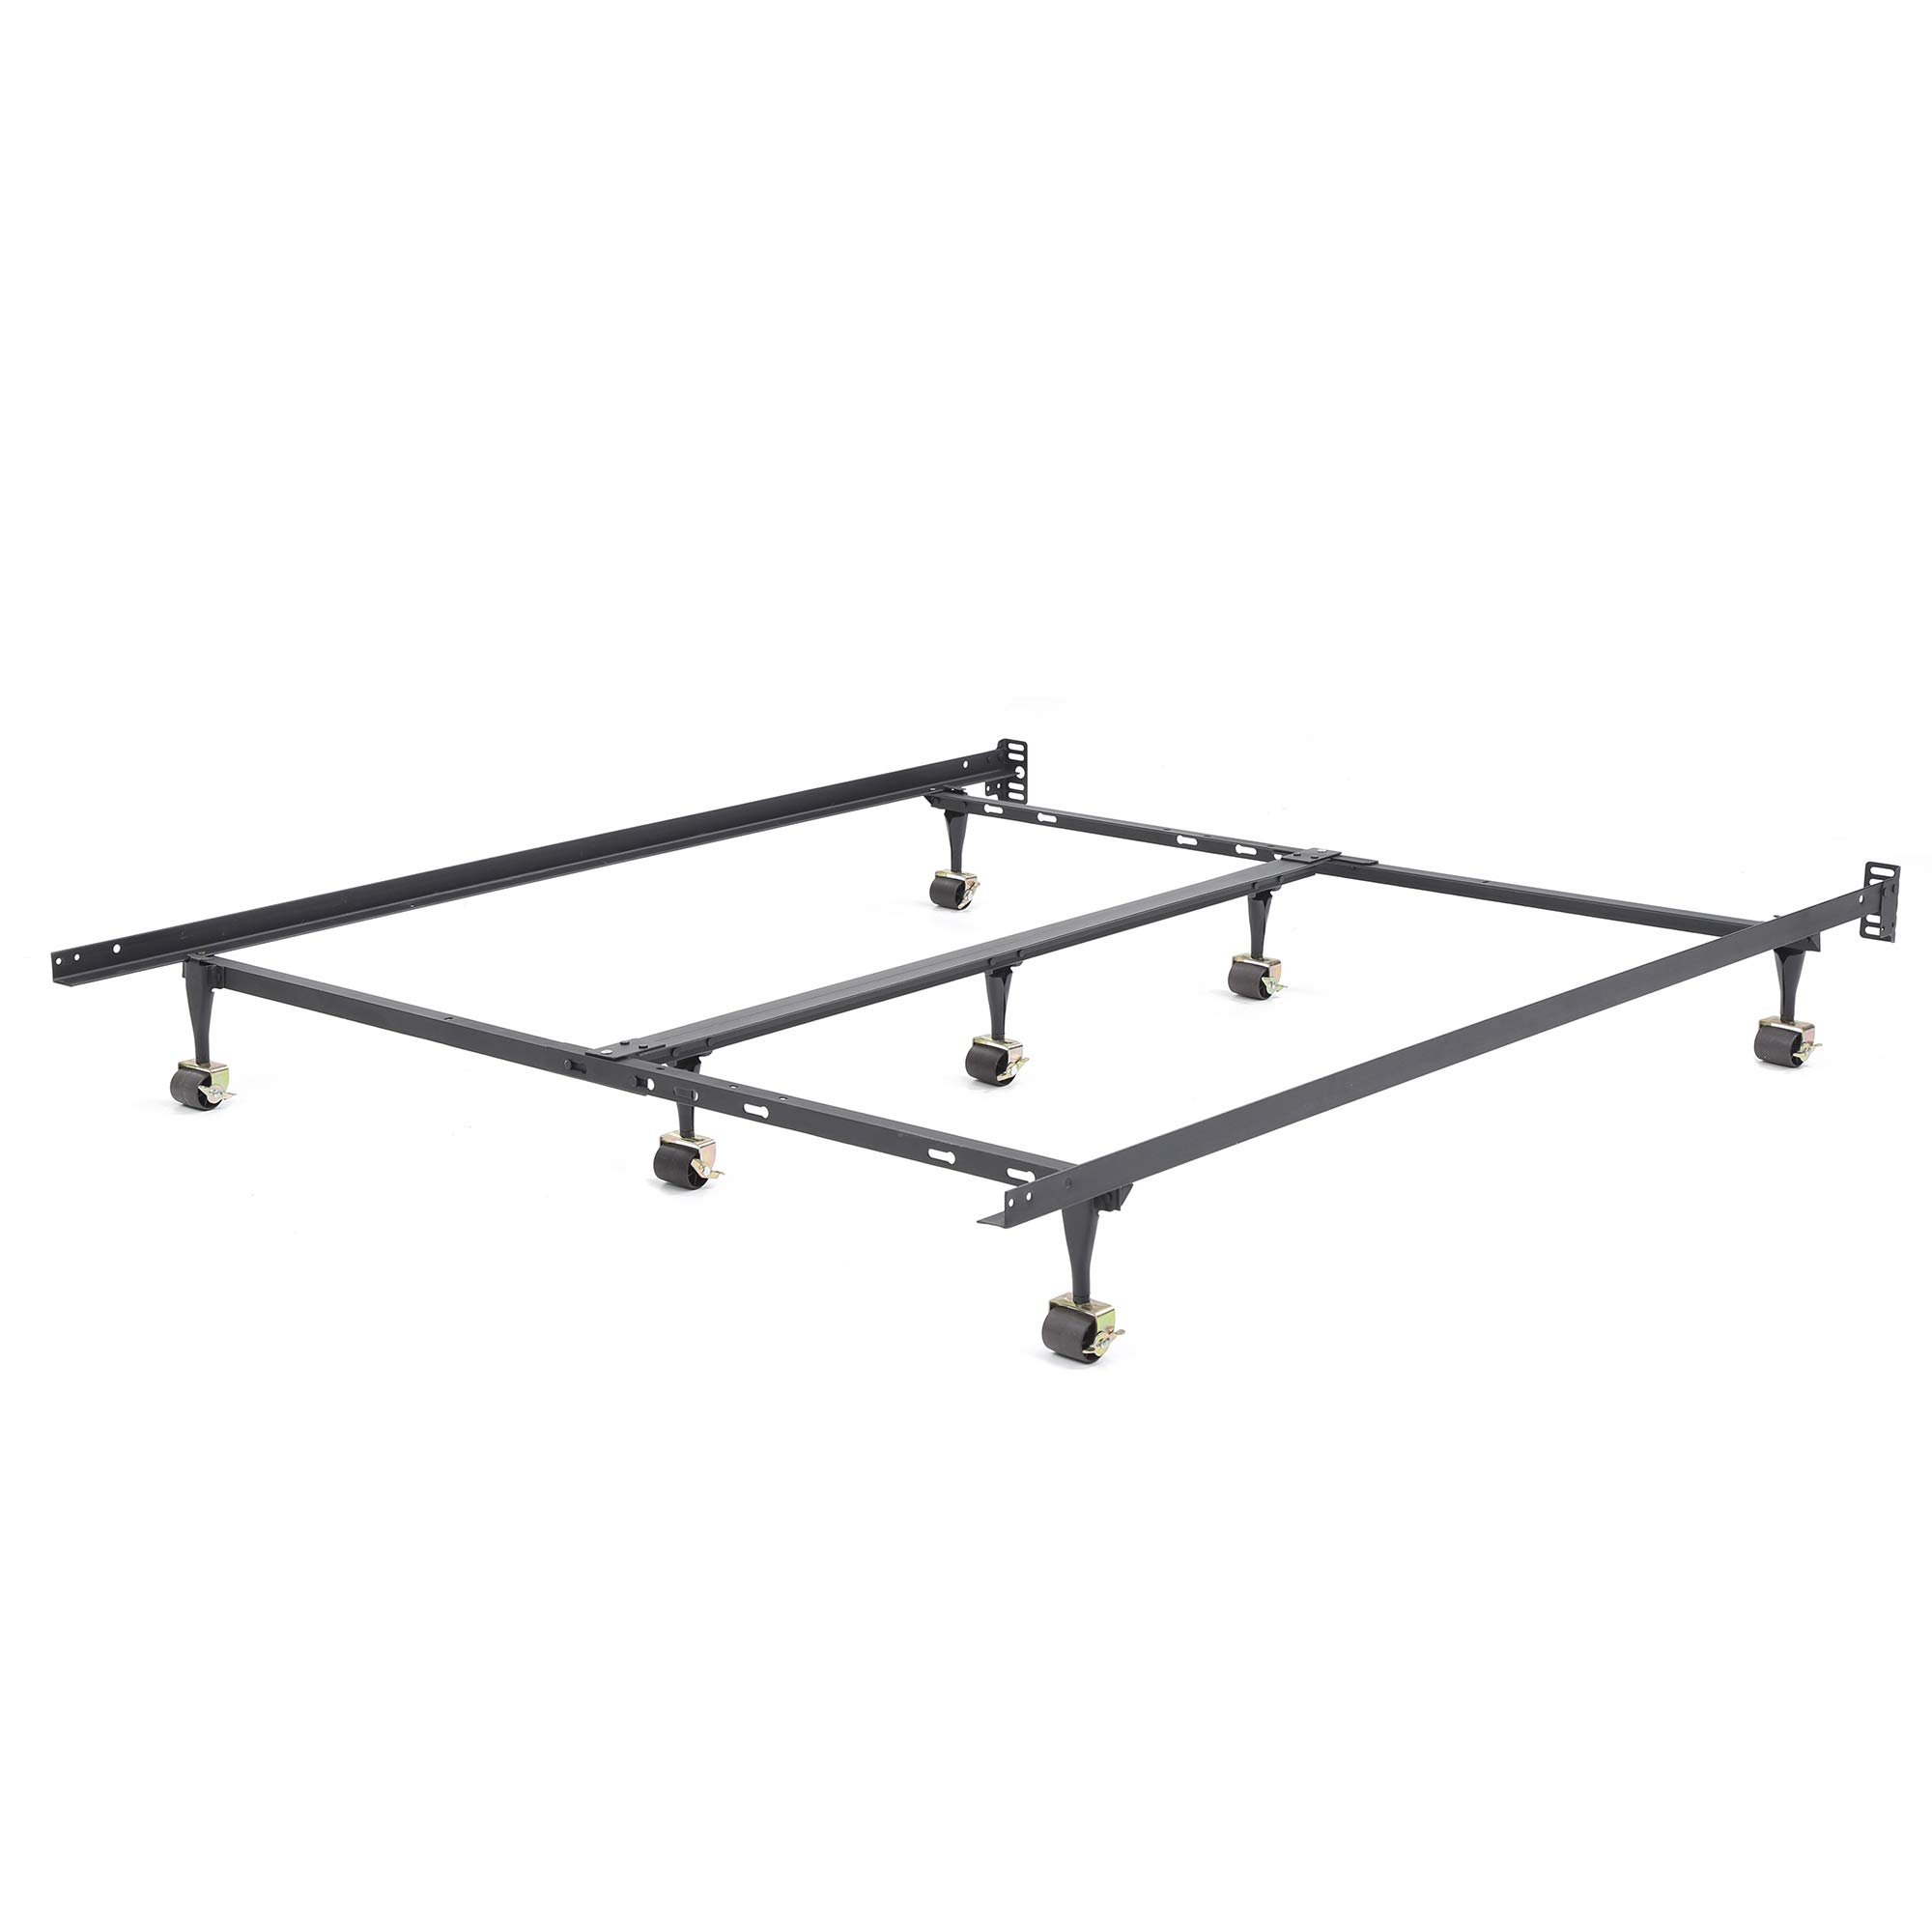 Classic Brands Hercules Universal Heavy-Duty Metal Bed Frame | Adjustable Width Fits Twin, Twin XL, Full, Queen, King, California King by Classic Brands